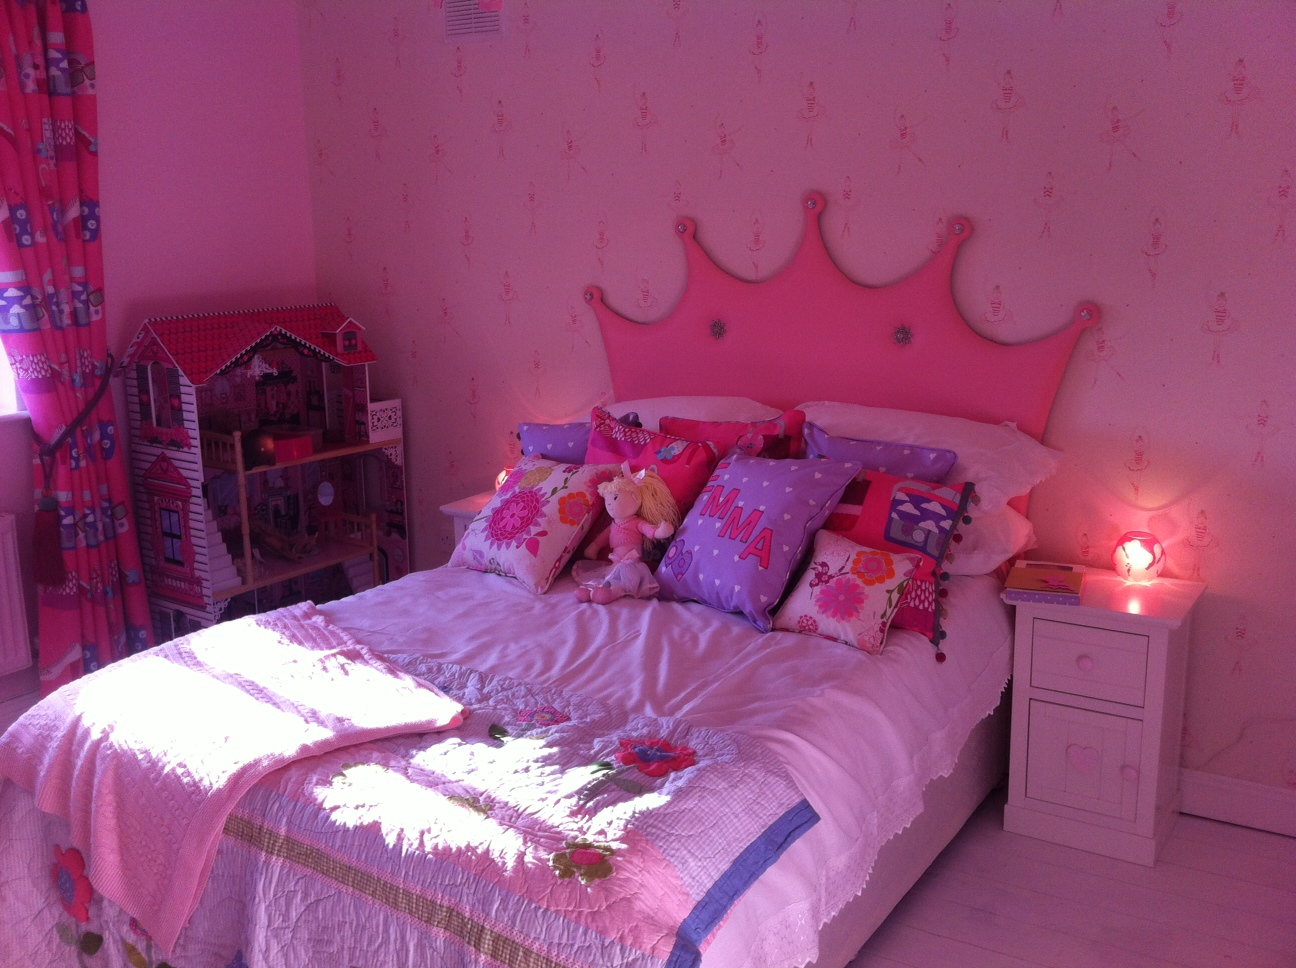 Queen Canopy Bedroom Sets 27 Princess Bed Ideas You Might Want To Keep For Yourself